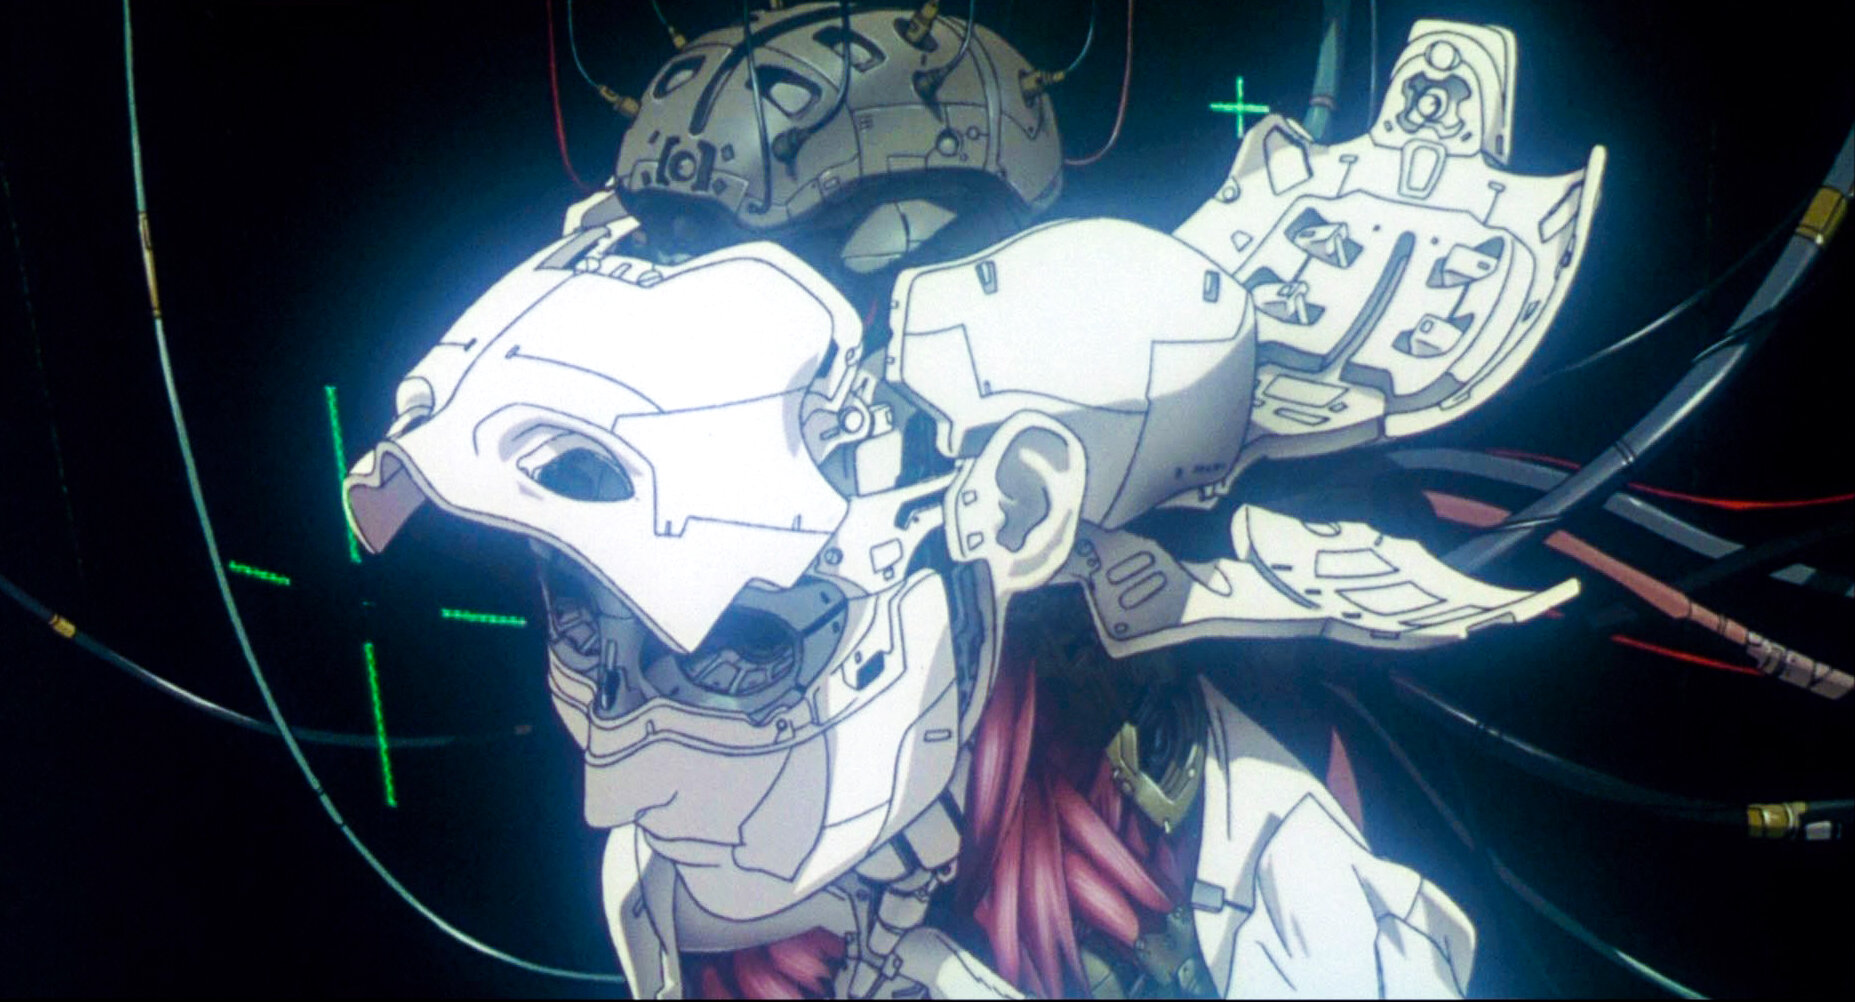 Late Night At The Parkway Ghost In The Shell 1995 Digital W Subtitles